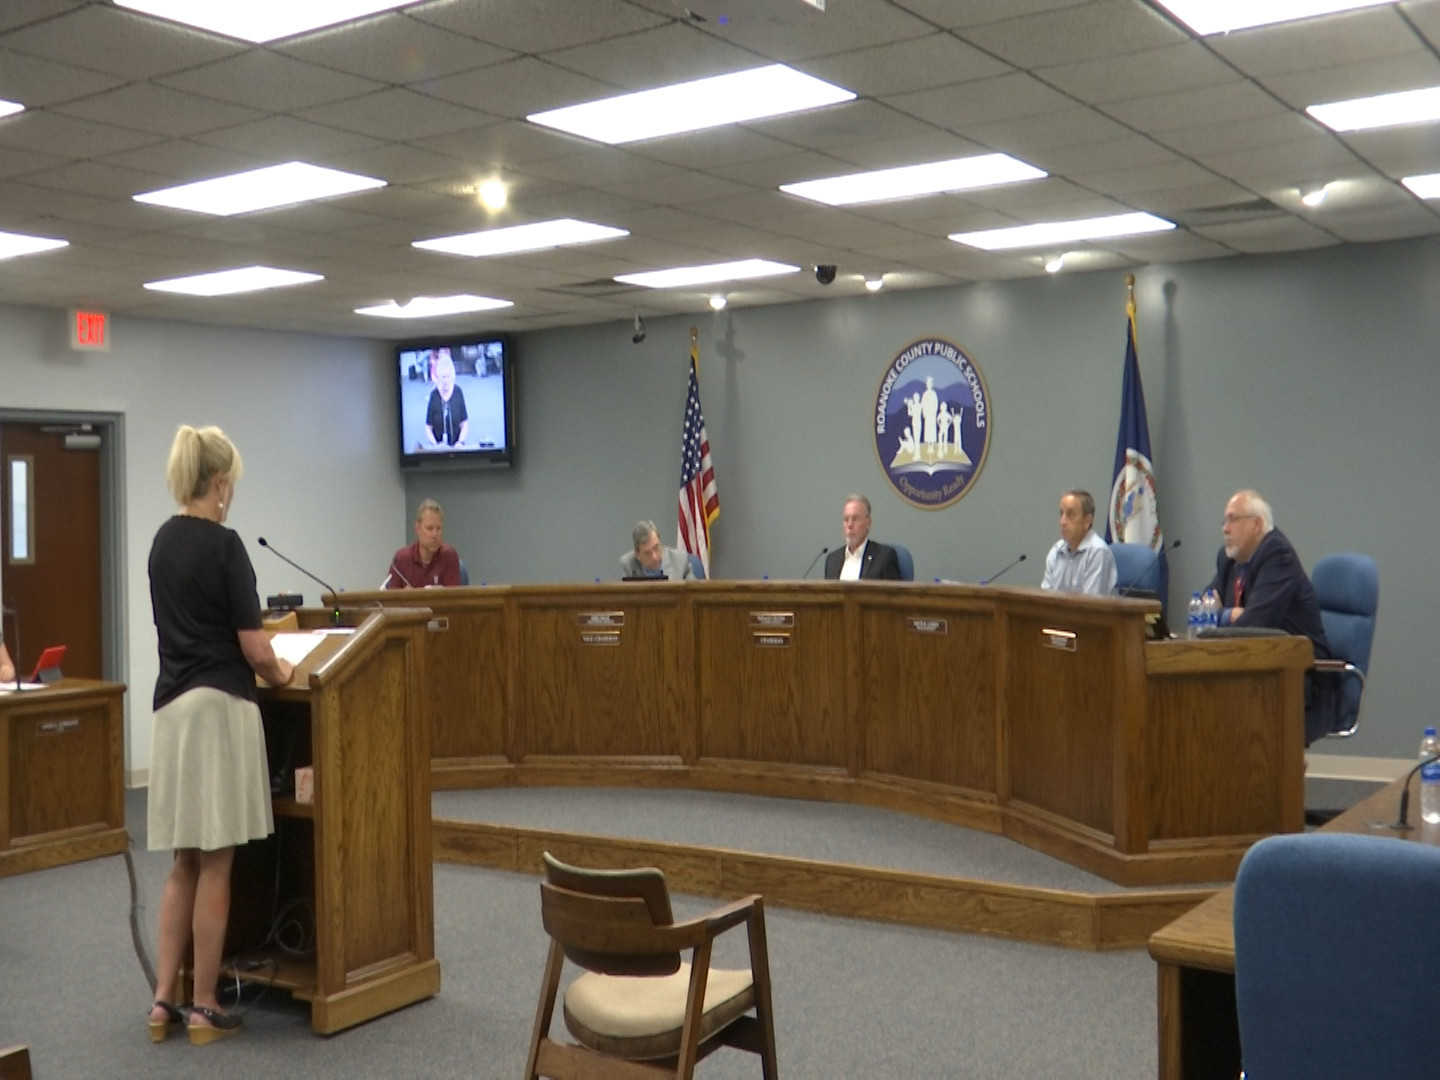 When Is Roanoke County Recognizing Halloween 2020 Roanoke County School Board discusses fall return plan at meeting